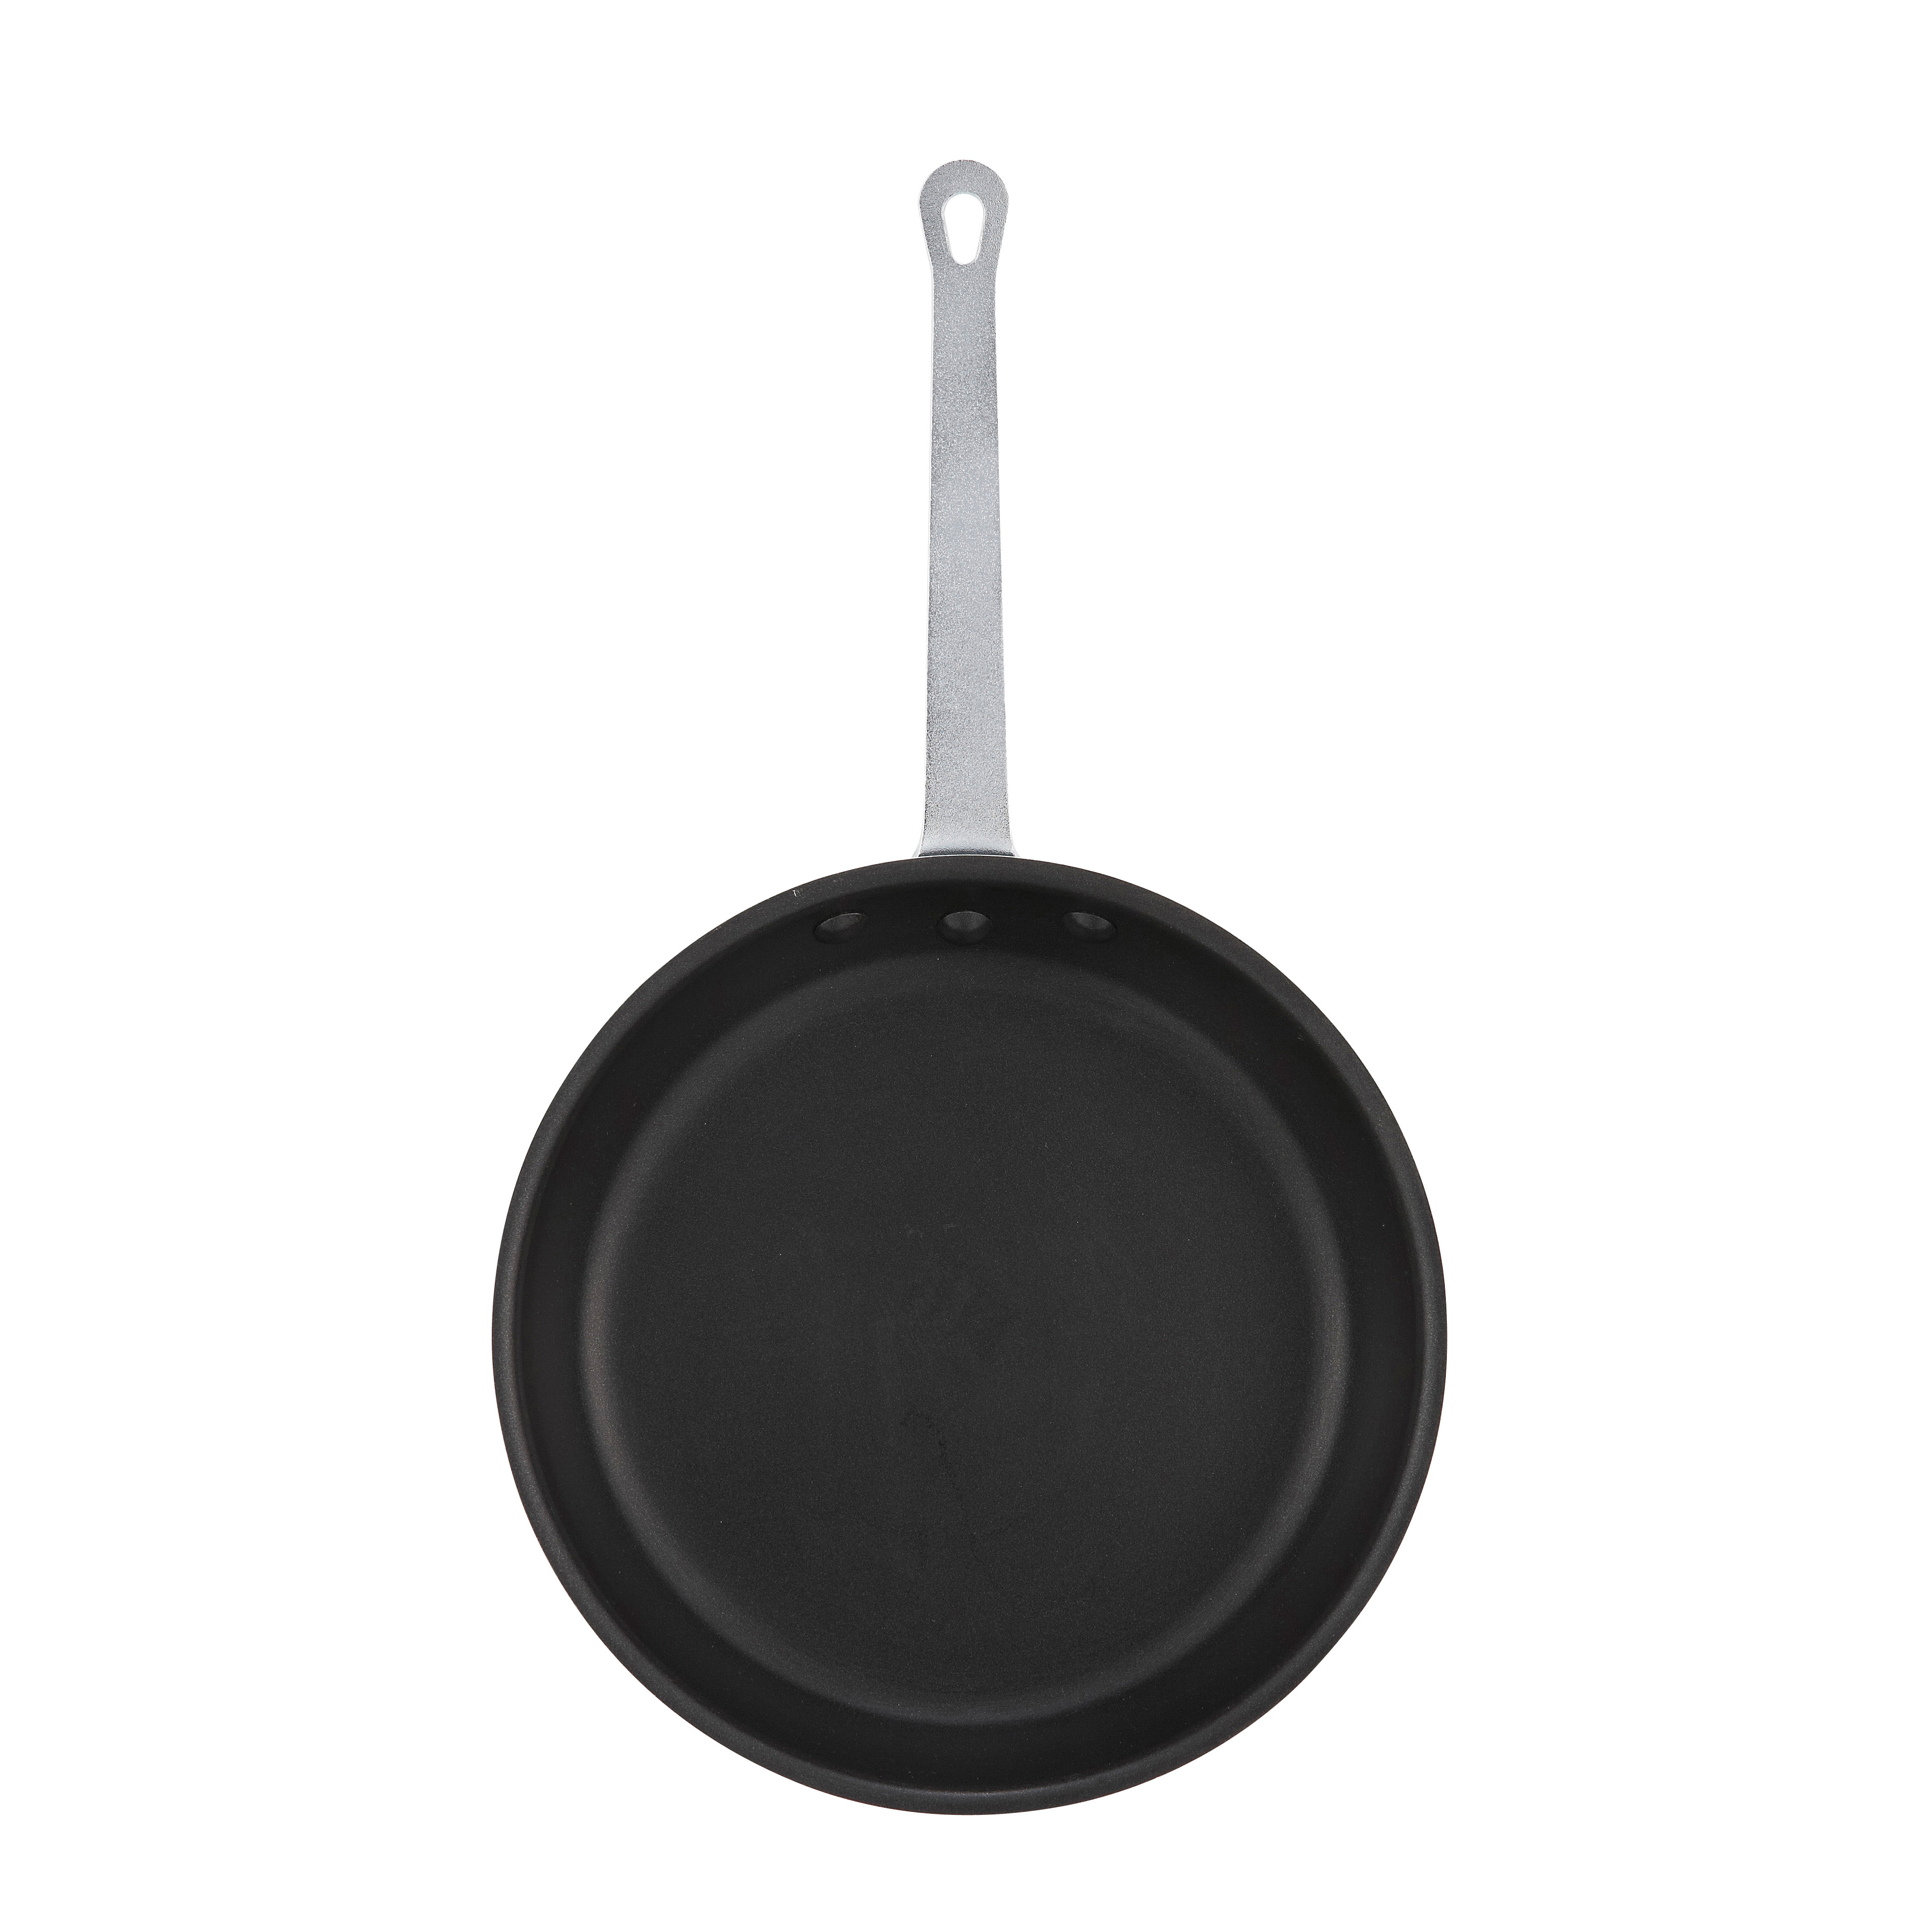 Winco AFP-12XC fry pan